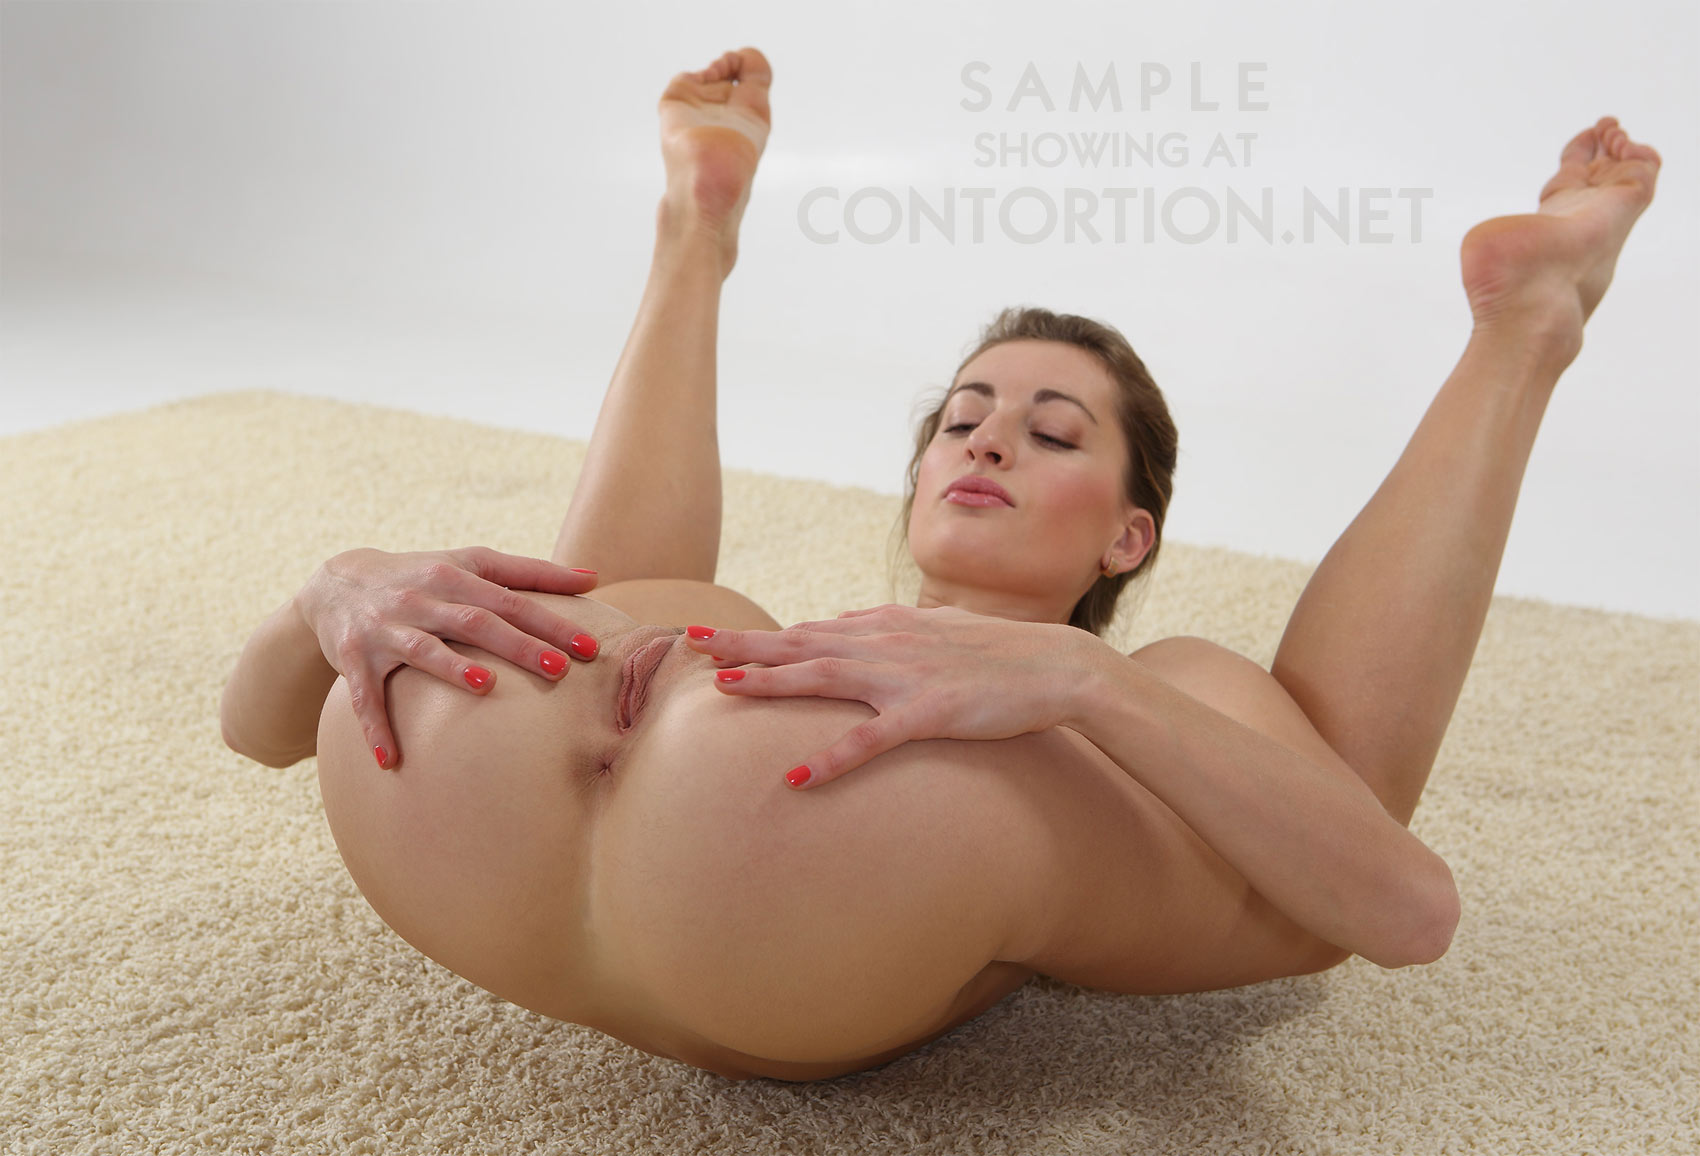 Sexy flexible contortionist nude simply matchless